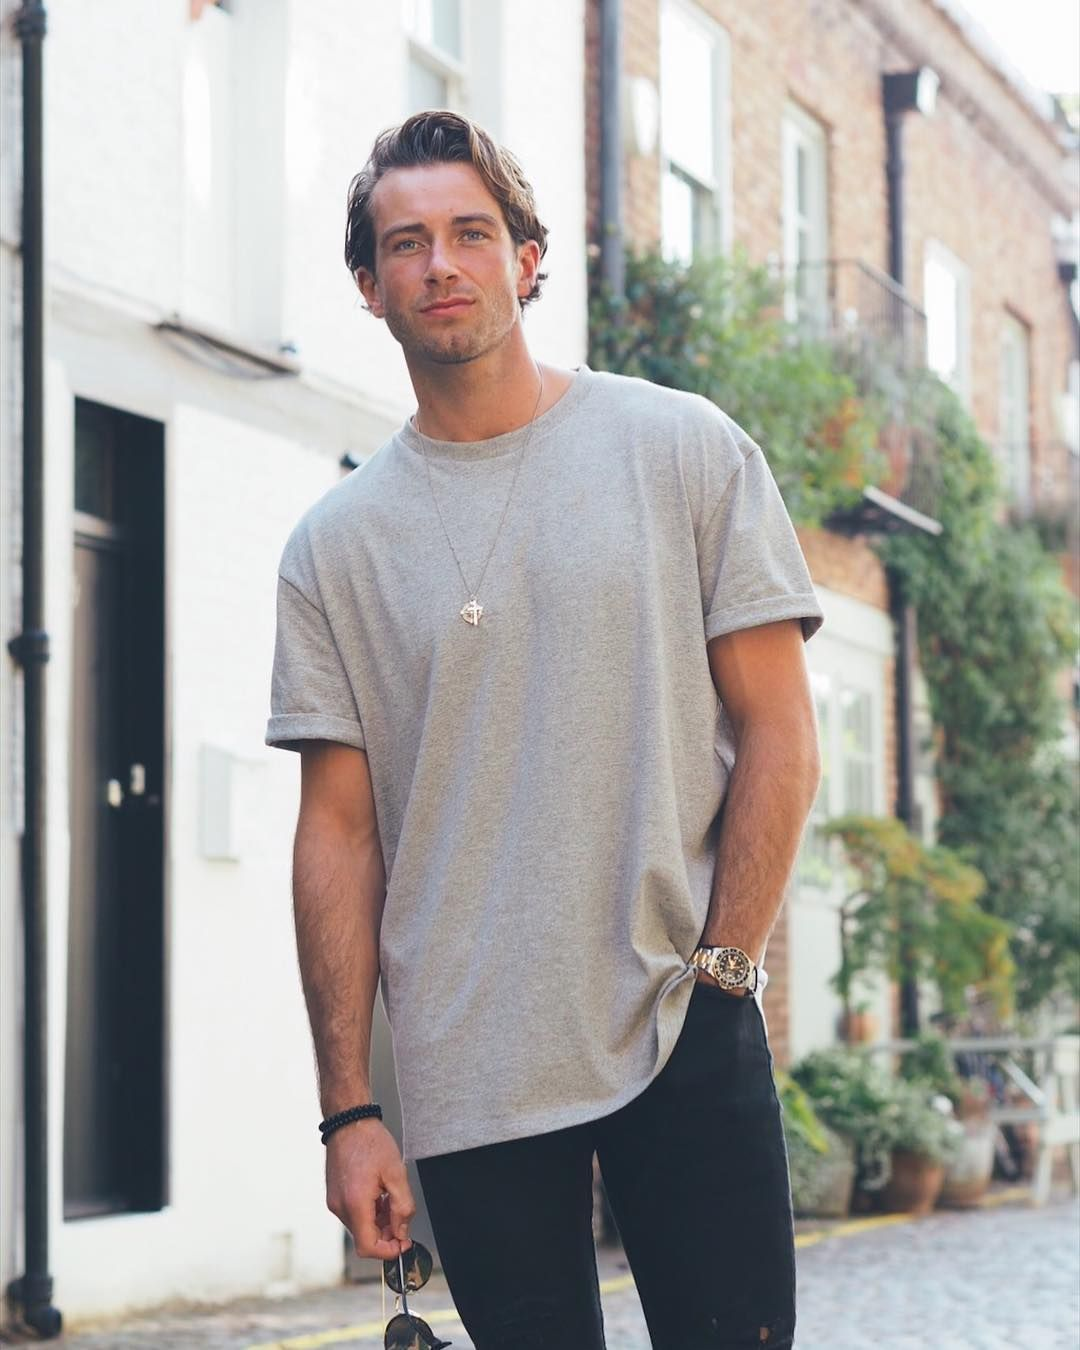 Image may contain: Made in Chelsea cast are actually from, Made in Chelsea, cast, place of birth, from, Digby Edgley, Sleeve, Man, Person, Human, Apparel, Clothing